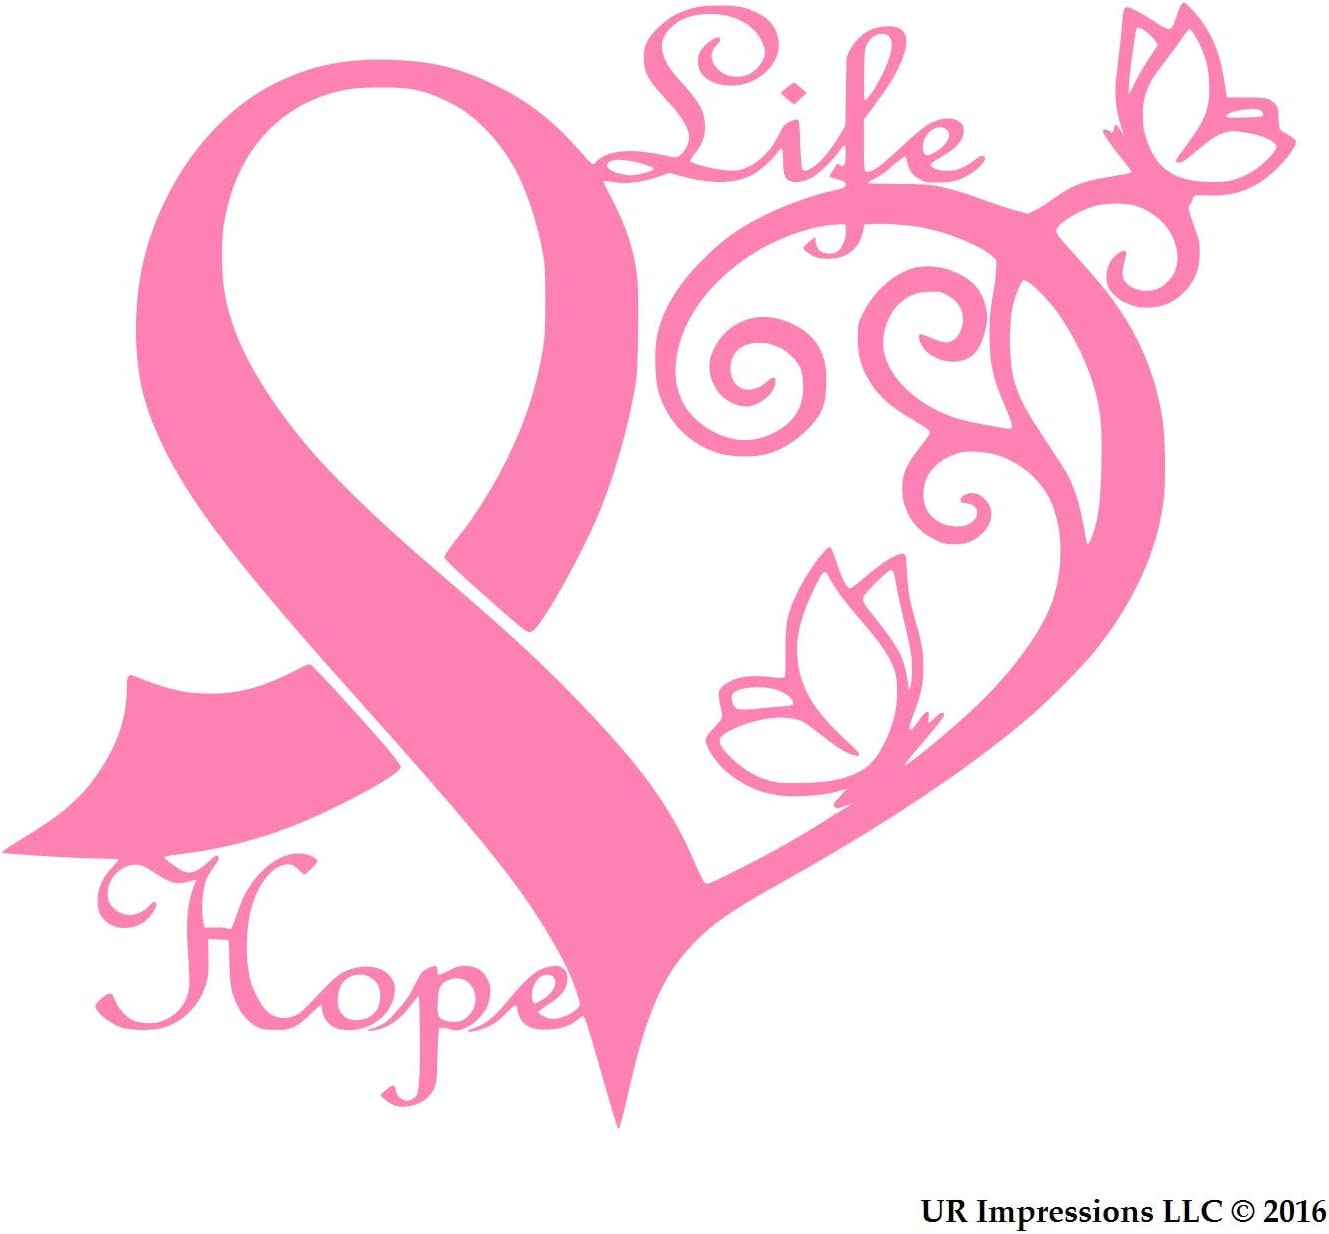 UR Impressions Pnk Cancer Awareness Ribbon Heart Butterfly Vine - Life Hope Decal Vinyl Sticker Graphics for Car Truck SUV Van Wall Window Laptop Pink 6.4 X 5.5 Inch URI275